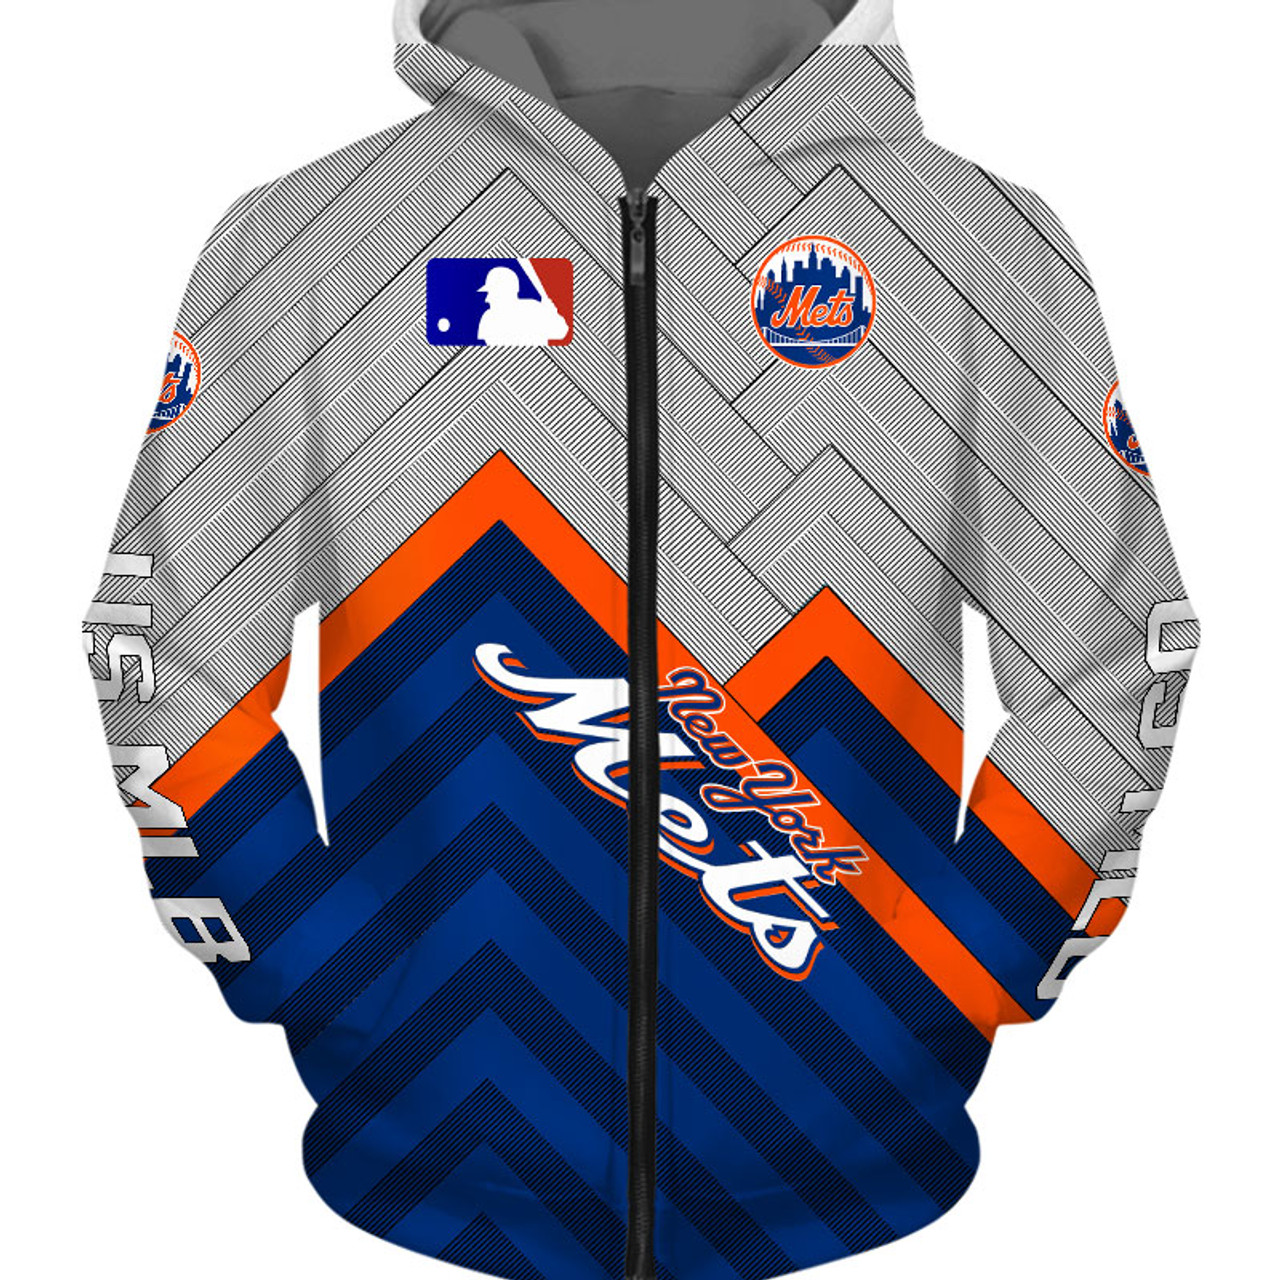 buy popular 01b6c 6d848 **(OFFICIAL-M.L.B.NEW-YORK-METS-TEAM-ZIPPERED-HOODIES/CUSTOM-DETAILED-3D-GRAPHIC-PRINTED/PREMIUM-ALL-OVER-DOUBLE-SIDED-PRINT/OFFICIAL-METS-TEAM-COLORS  ...